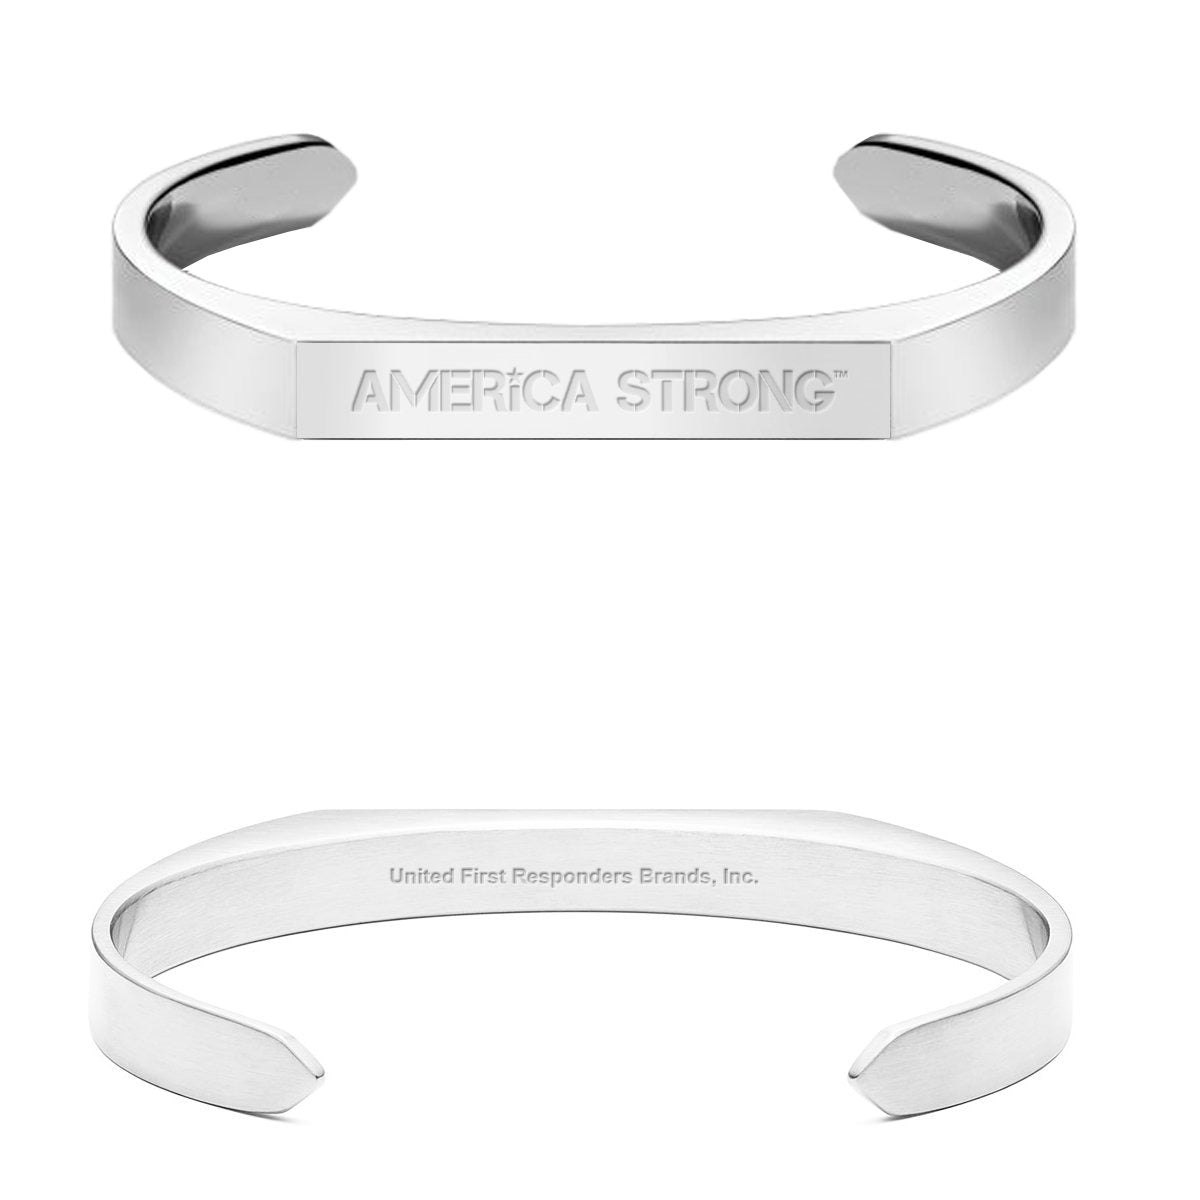 Stainless Steel America Strong Cuff Bracelet